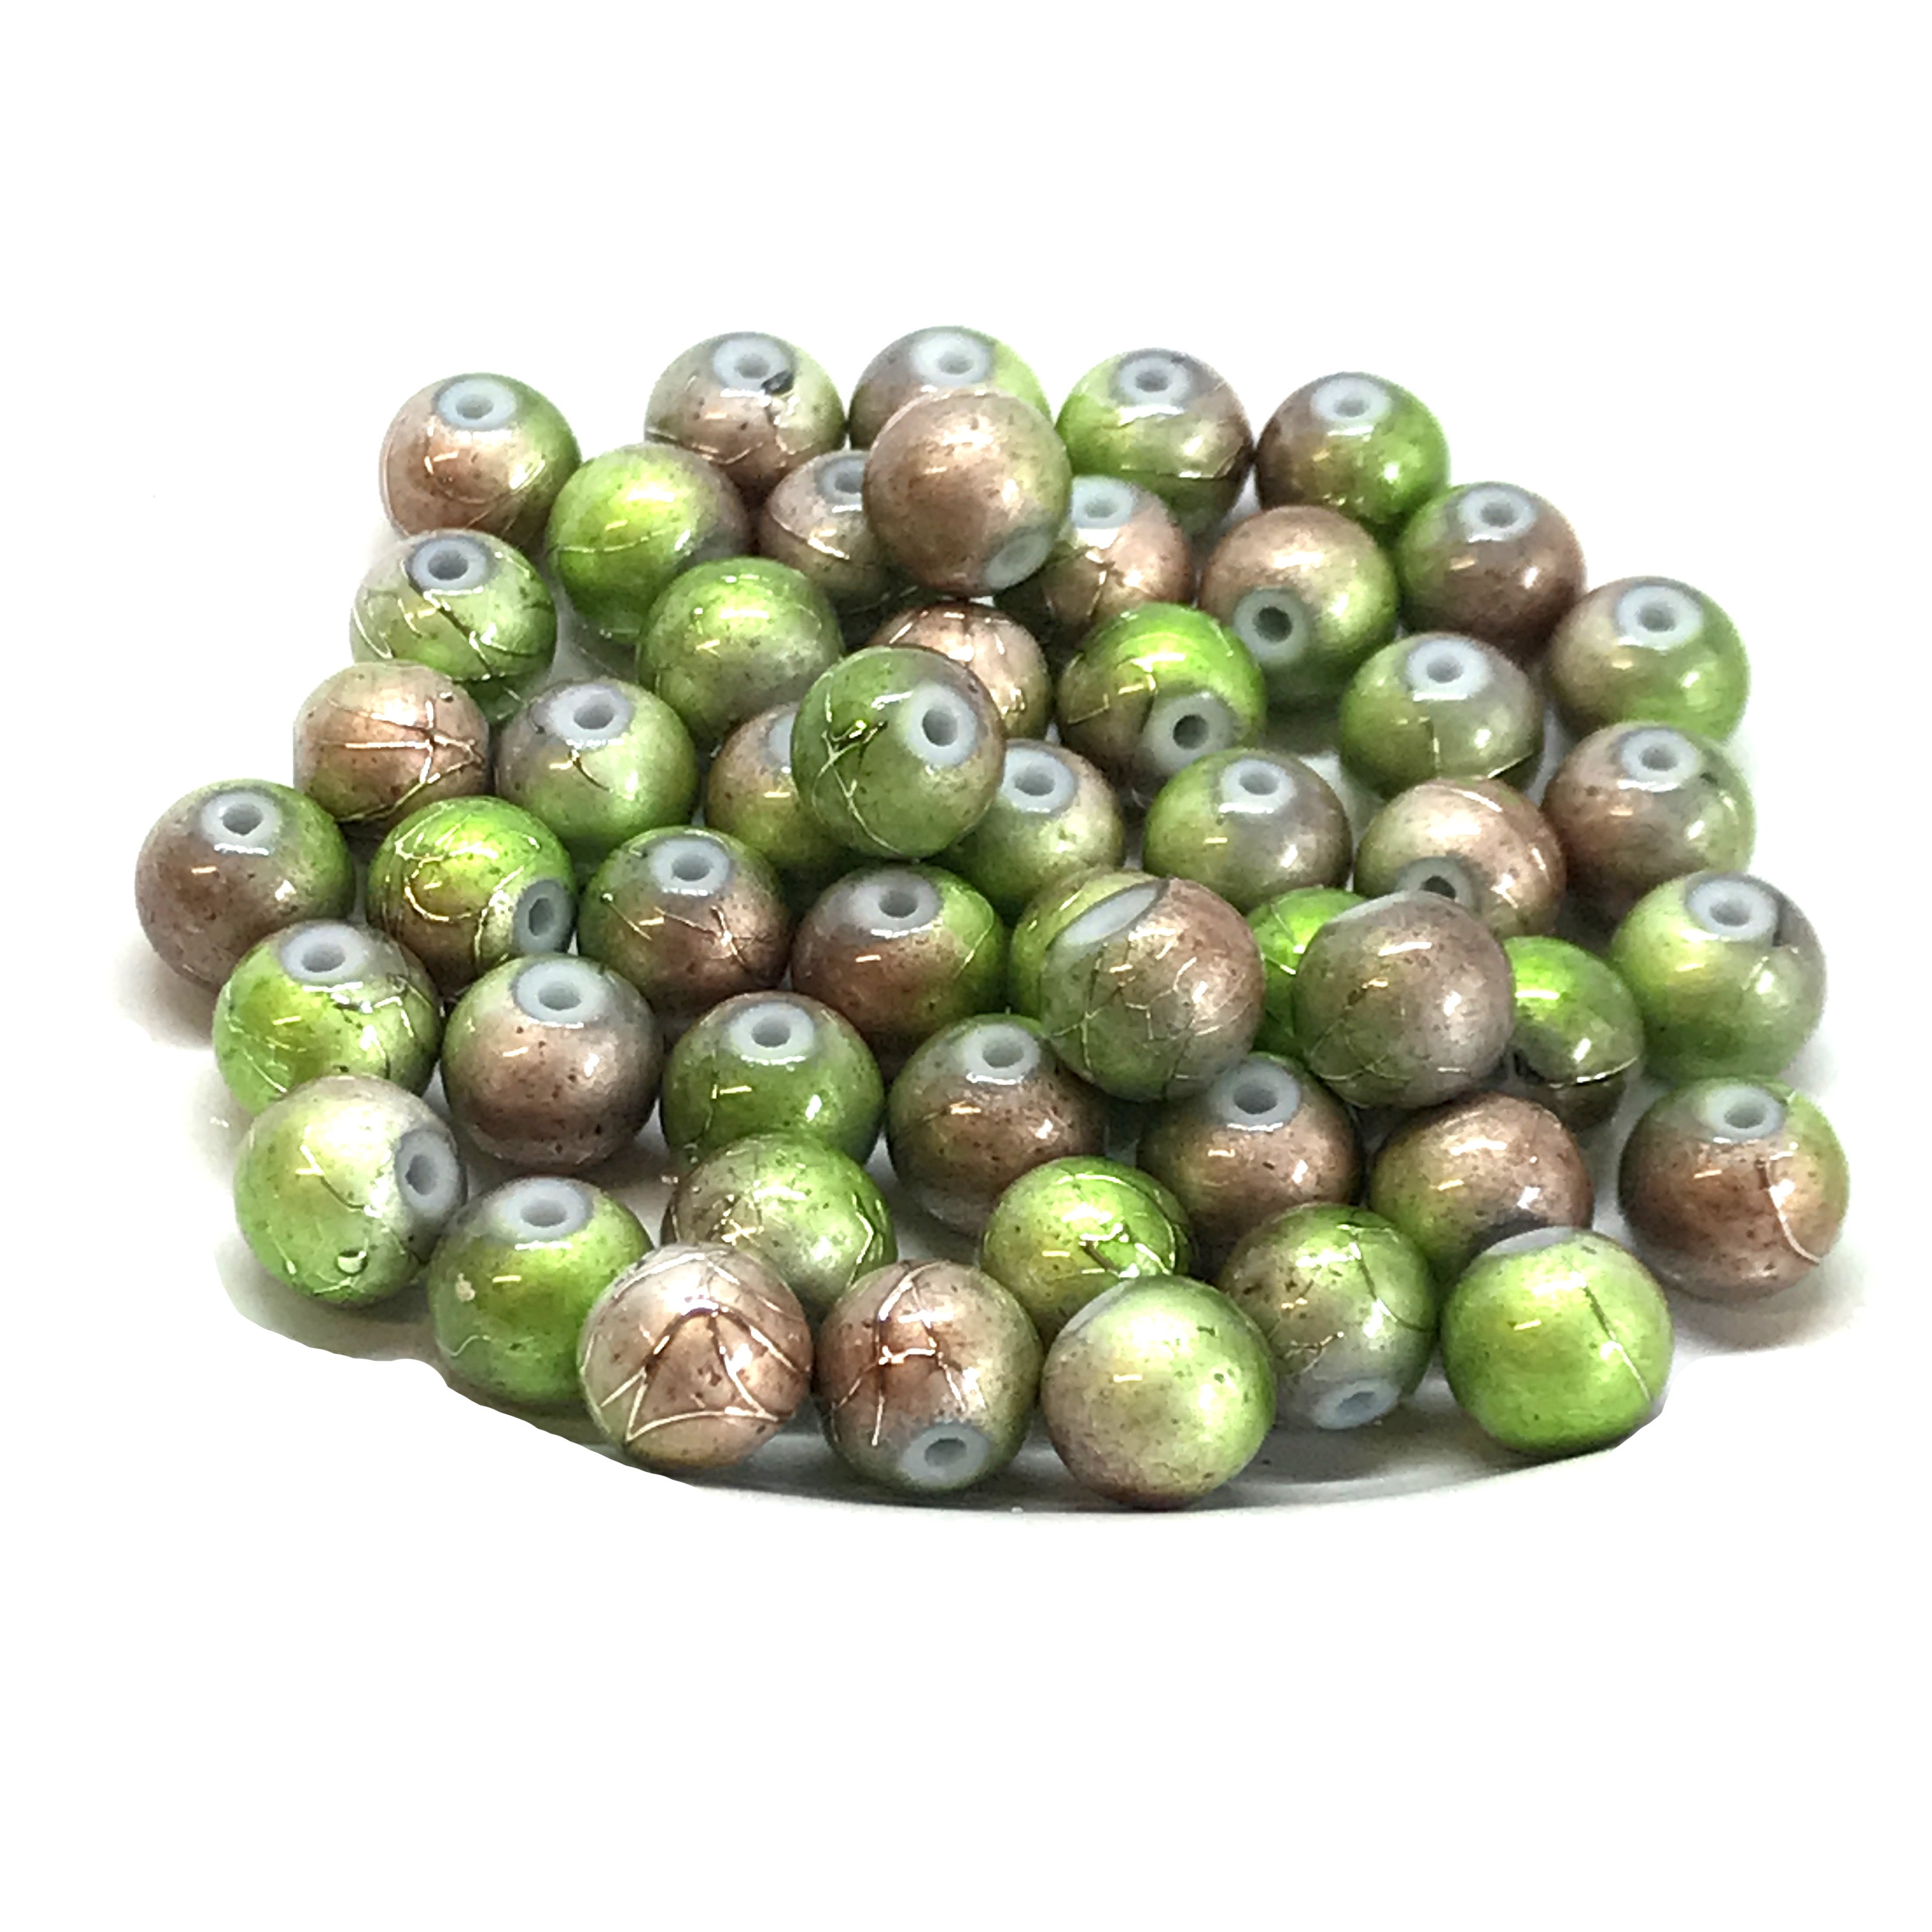 two-tone spectra beads, glass beads, jewelry supplies, colorful beads, two-tone beads, green, brown, glass, spectra, 8mm, B'sue Boutiques, jewelry making, jewelry beads, beads, beading supplies, 0893, tie-dye beads